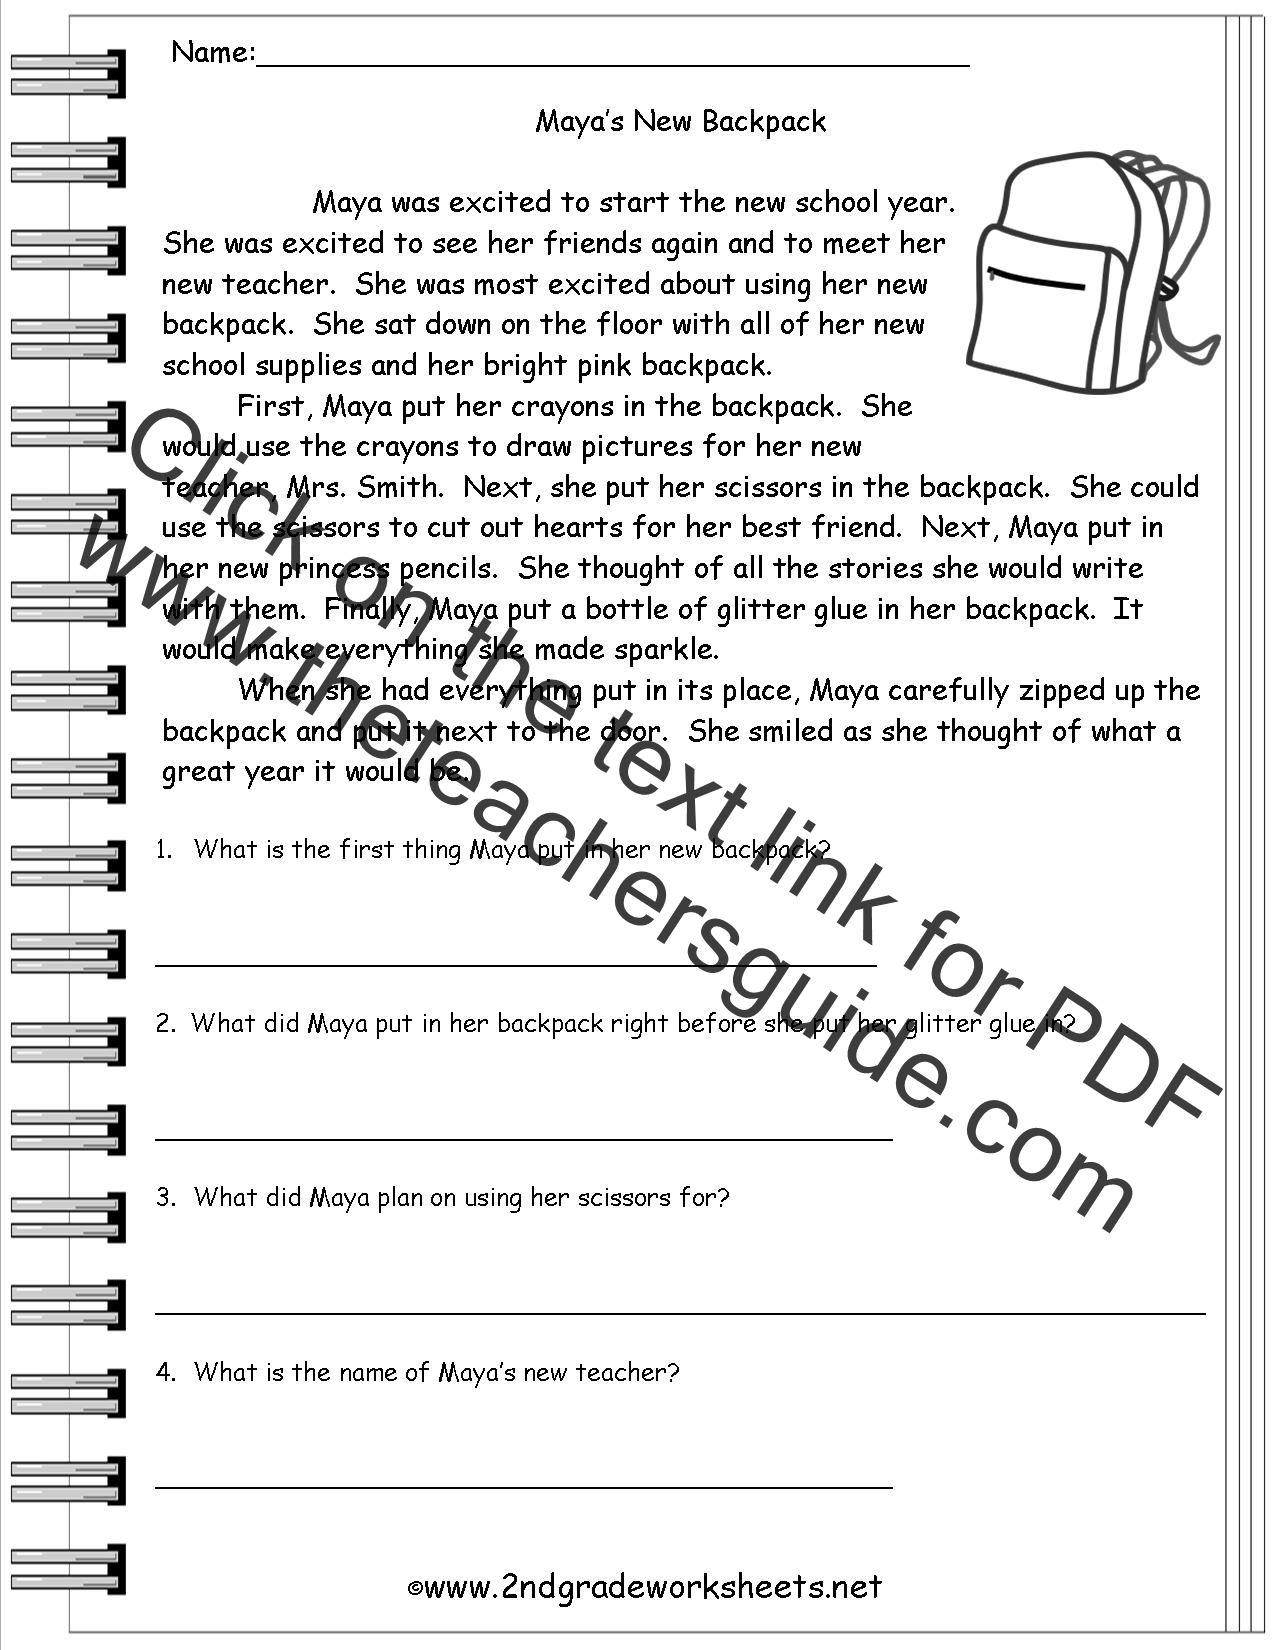 Worksheets 4th Grade Reading Comprehension Worksheets reading worksheeets worksheets